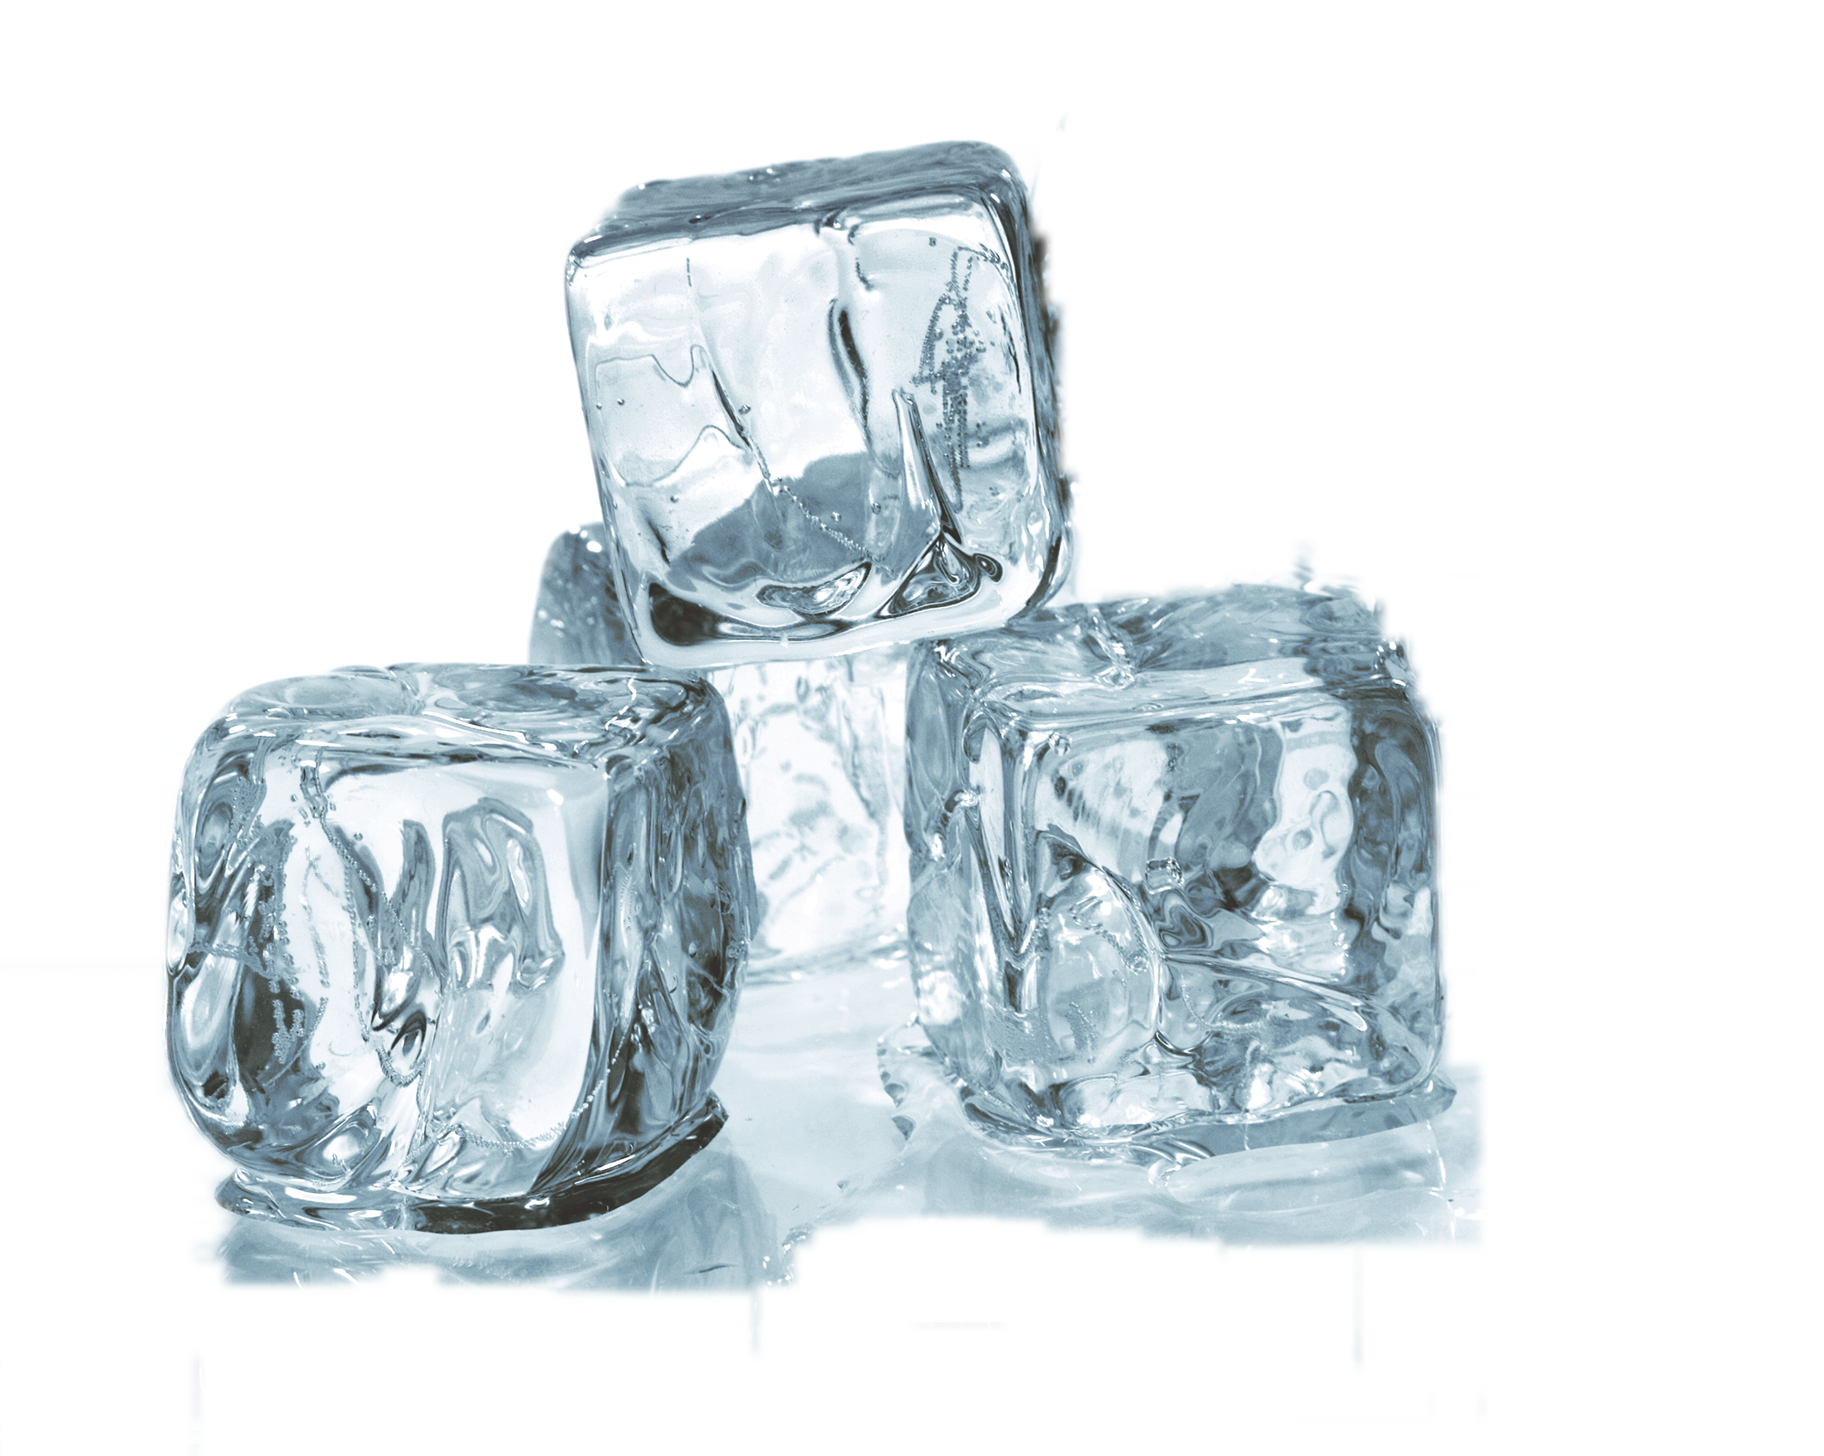 Png Designs Ice image #31296